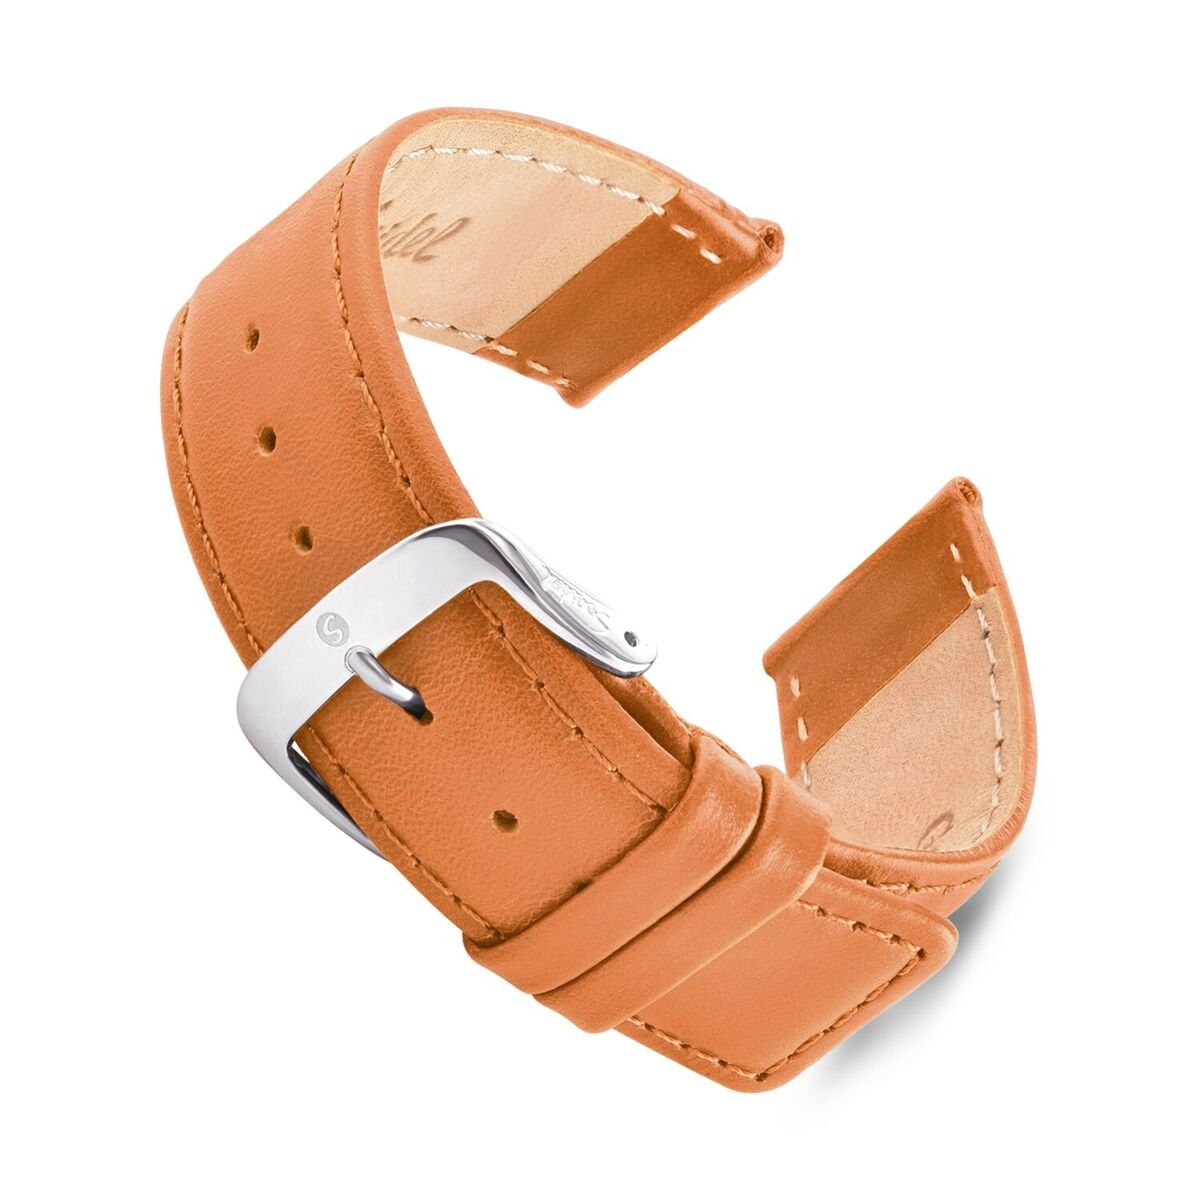 Speidel Genuine Leather Square Tip Watch Band 28mm Honey Oiled Leather Replacement Strap, Stainless Steel Metal Buckle Clasp, Watchband Fits Most Watch Brands